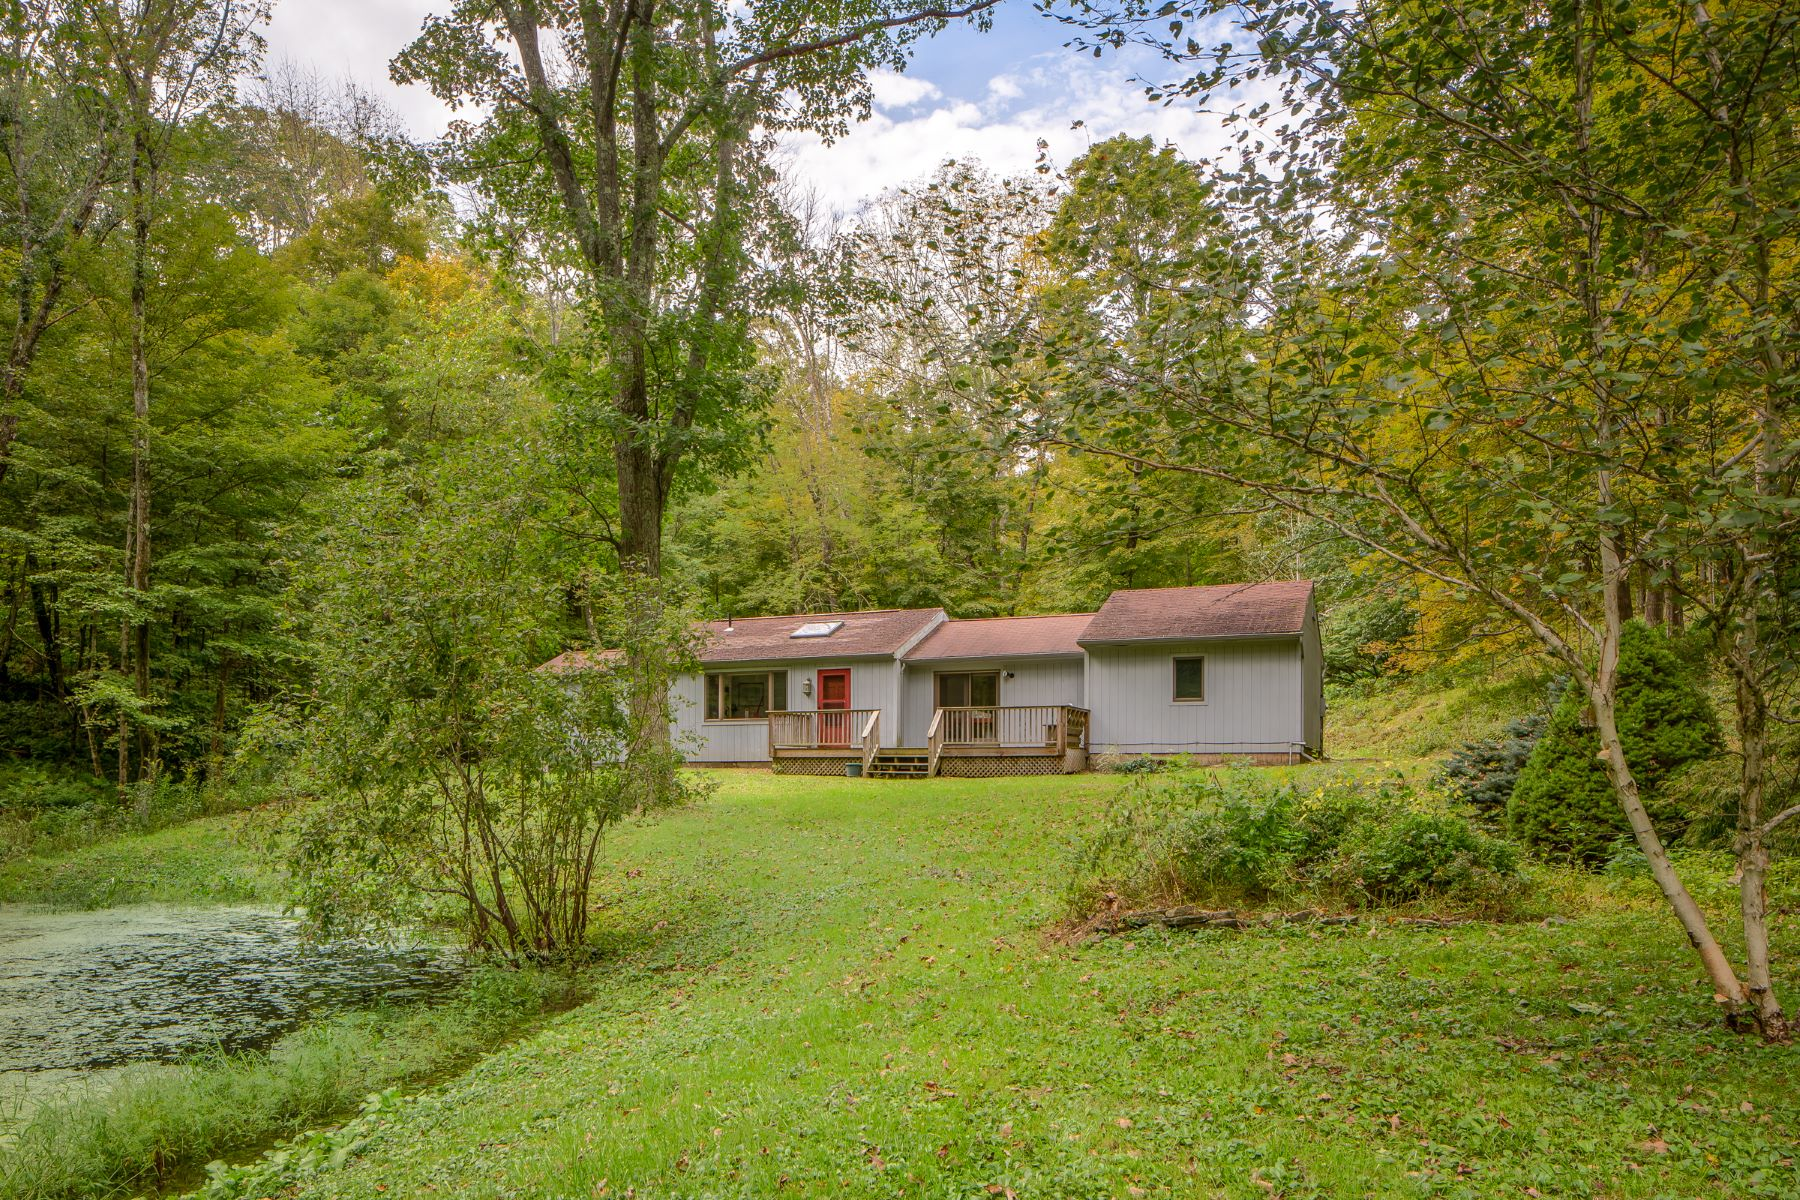 Single Family Home for Active at Stylish Egremont Cottage with Stream and Pond 15 Oxbow Rd Egremont, Massachusetts 01230 United States